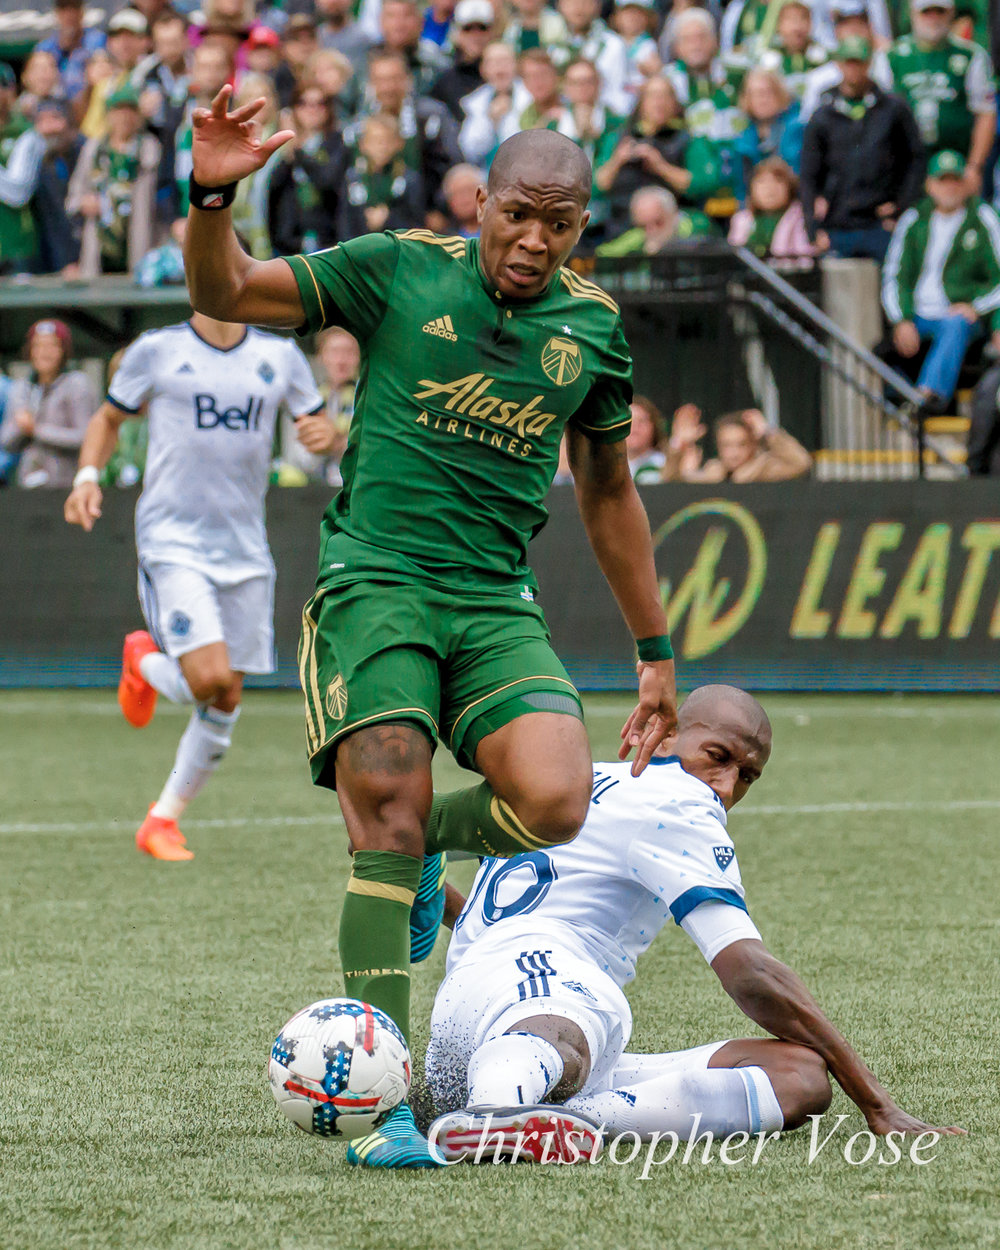 2017-10-22 Darlington Nagbe and Aly Ghazal.jpg